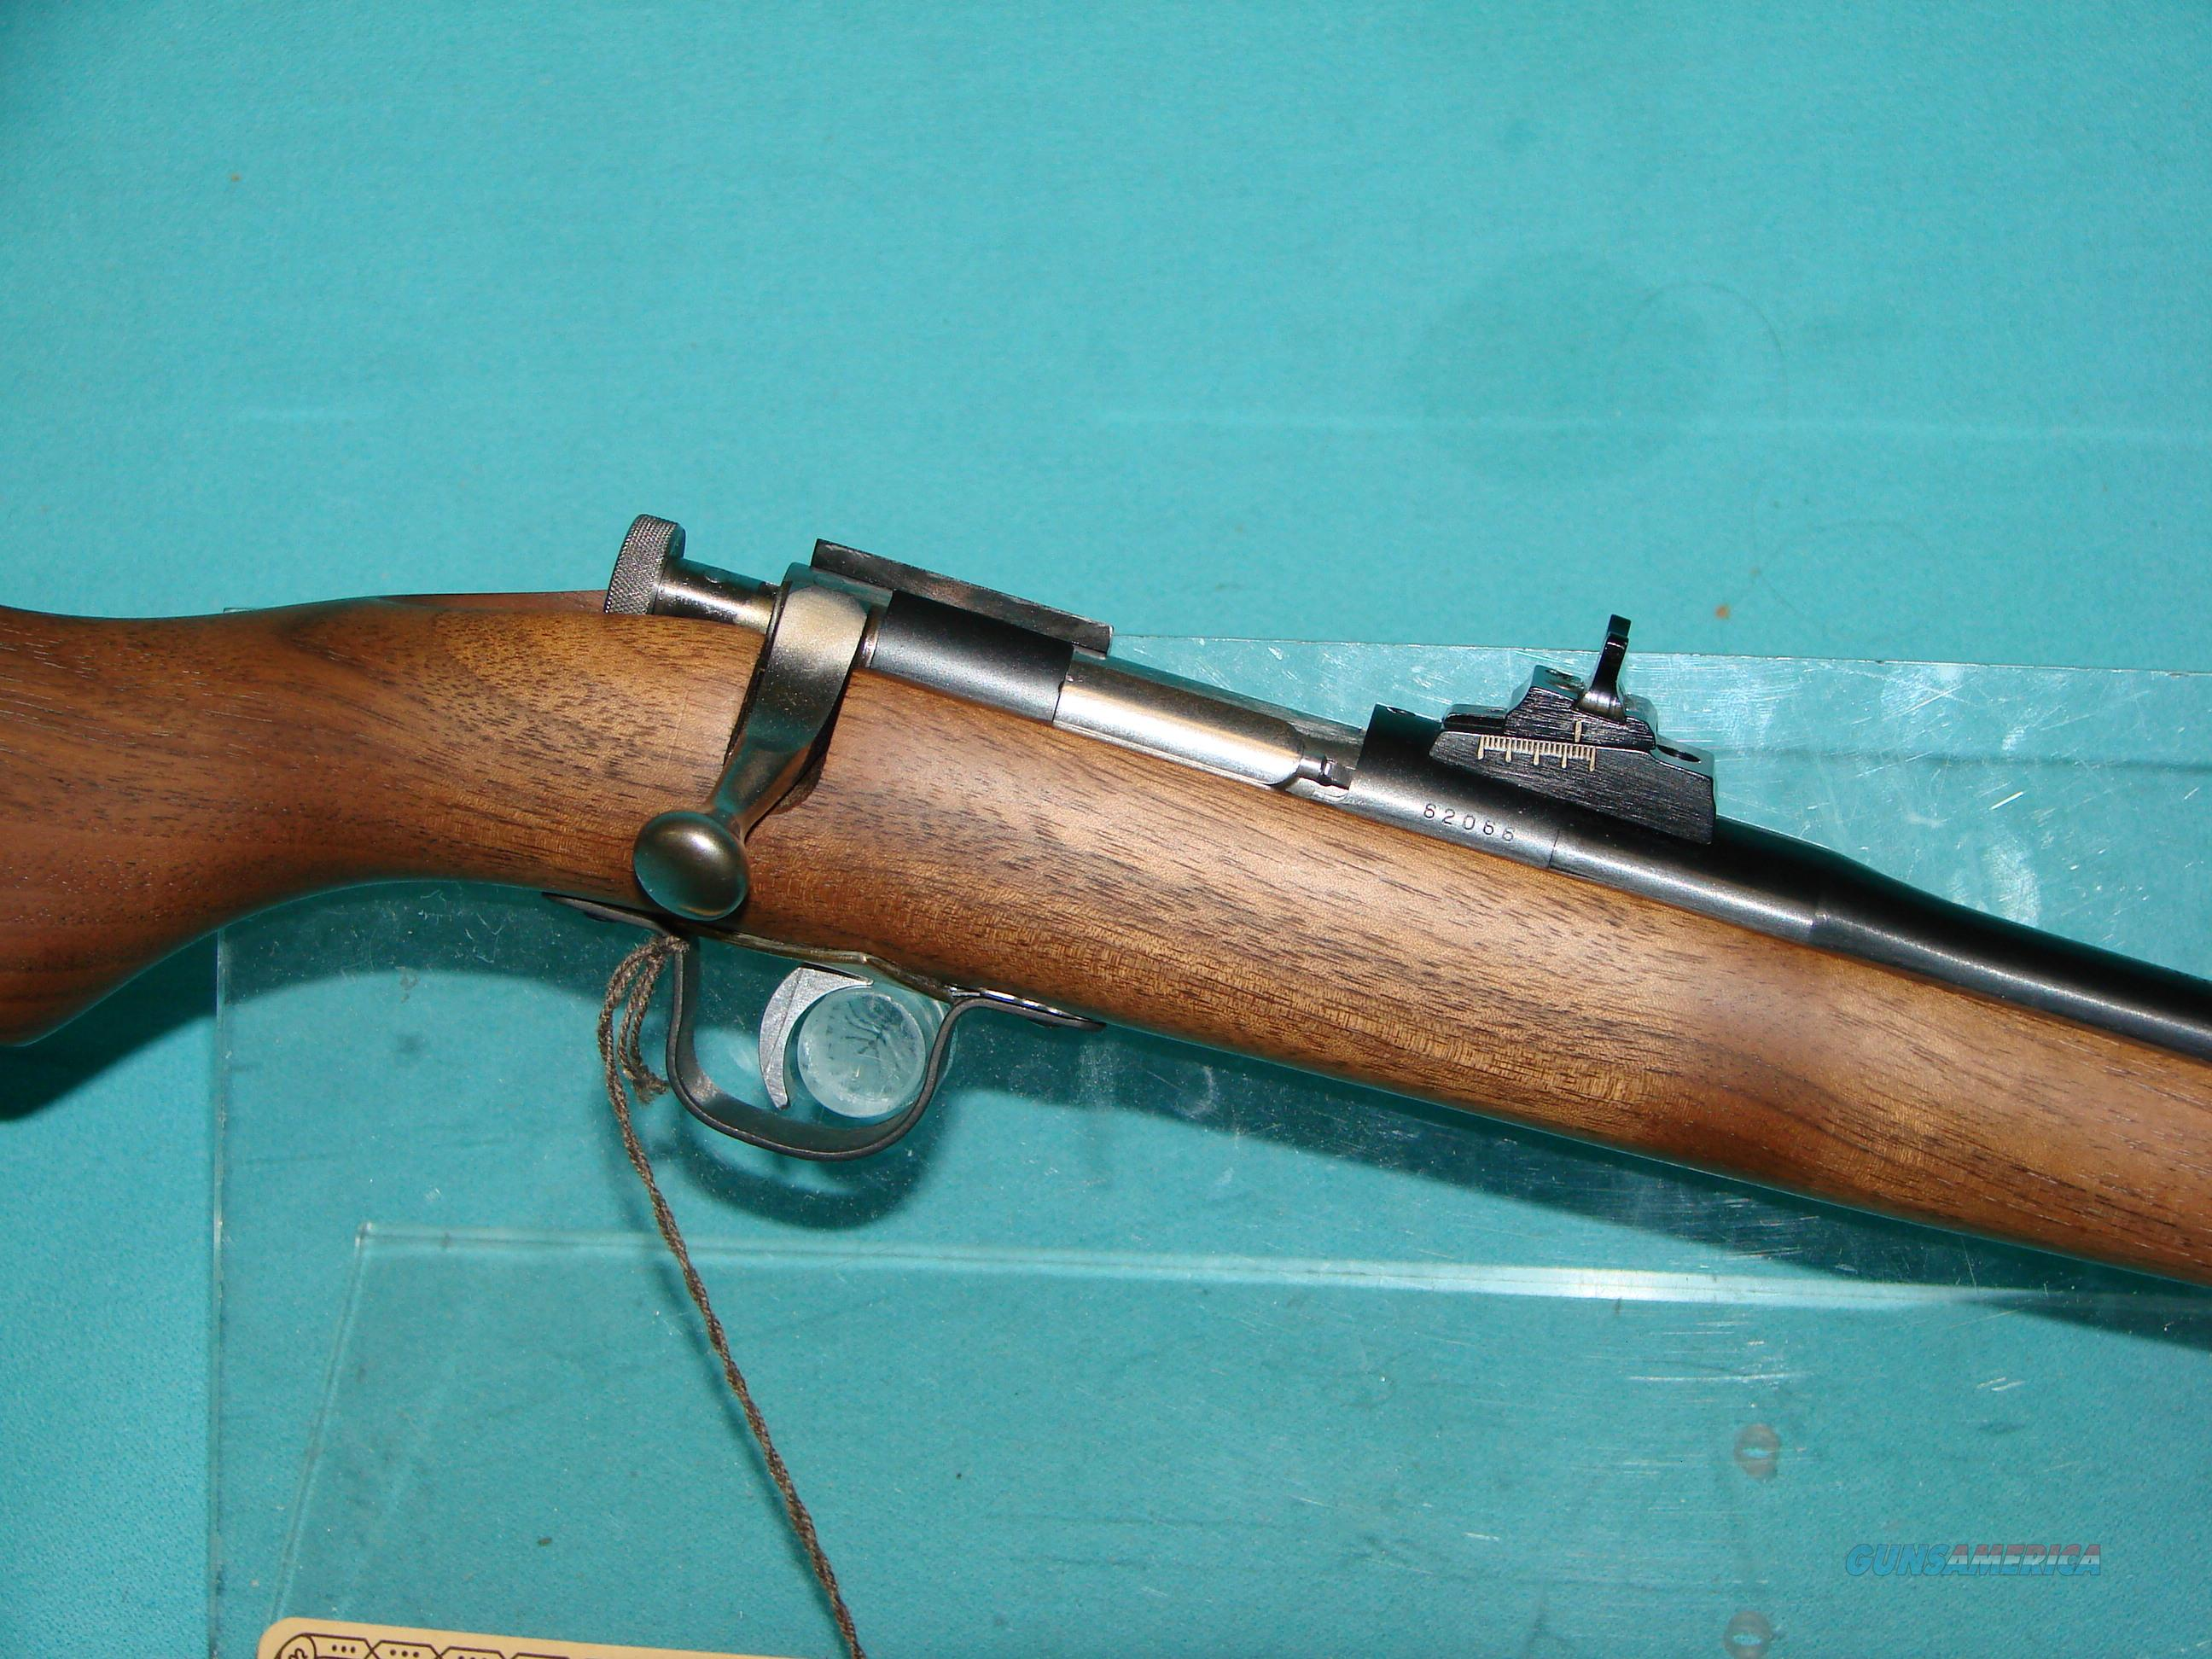 Oregon Arms Chipmunk 22LR